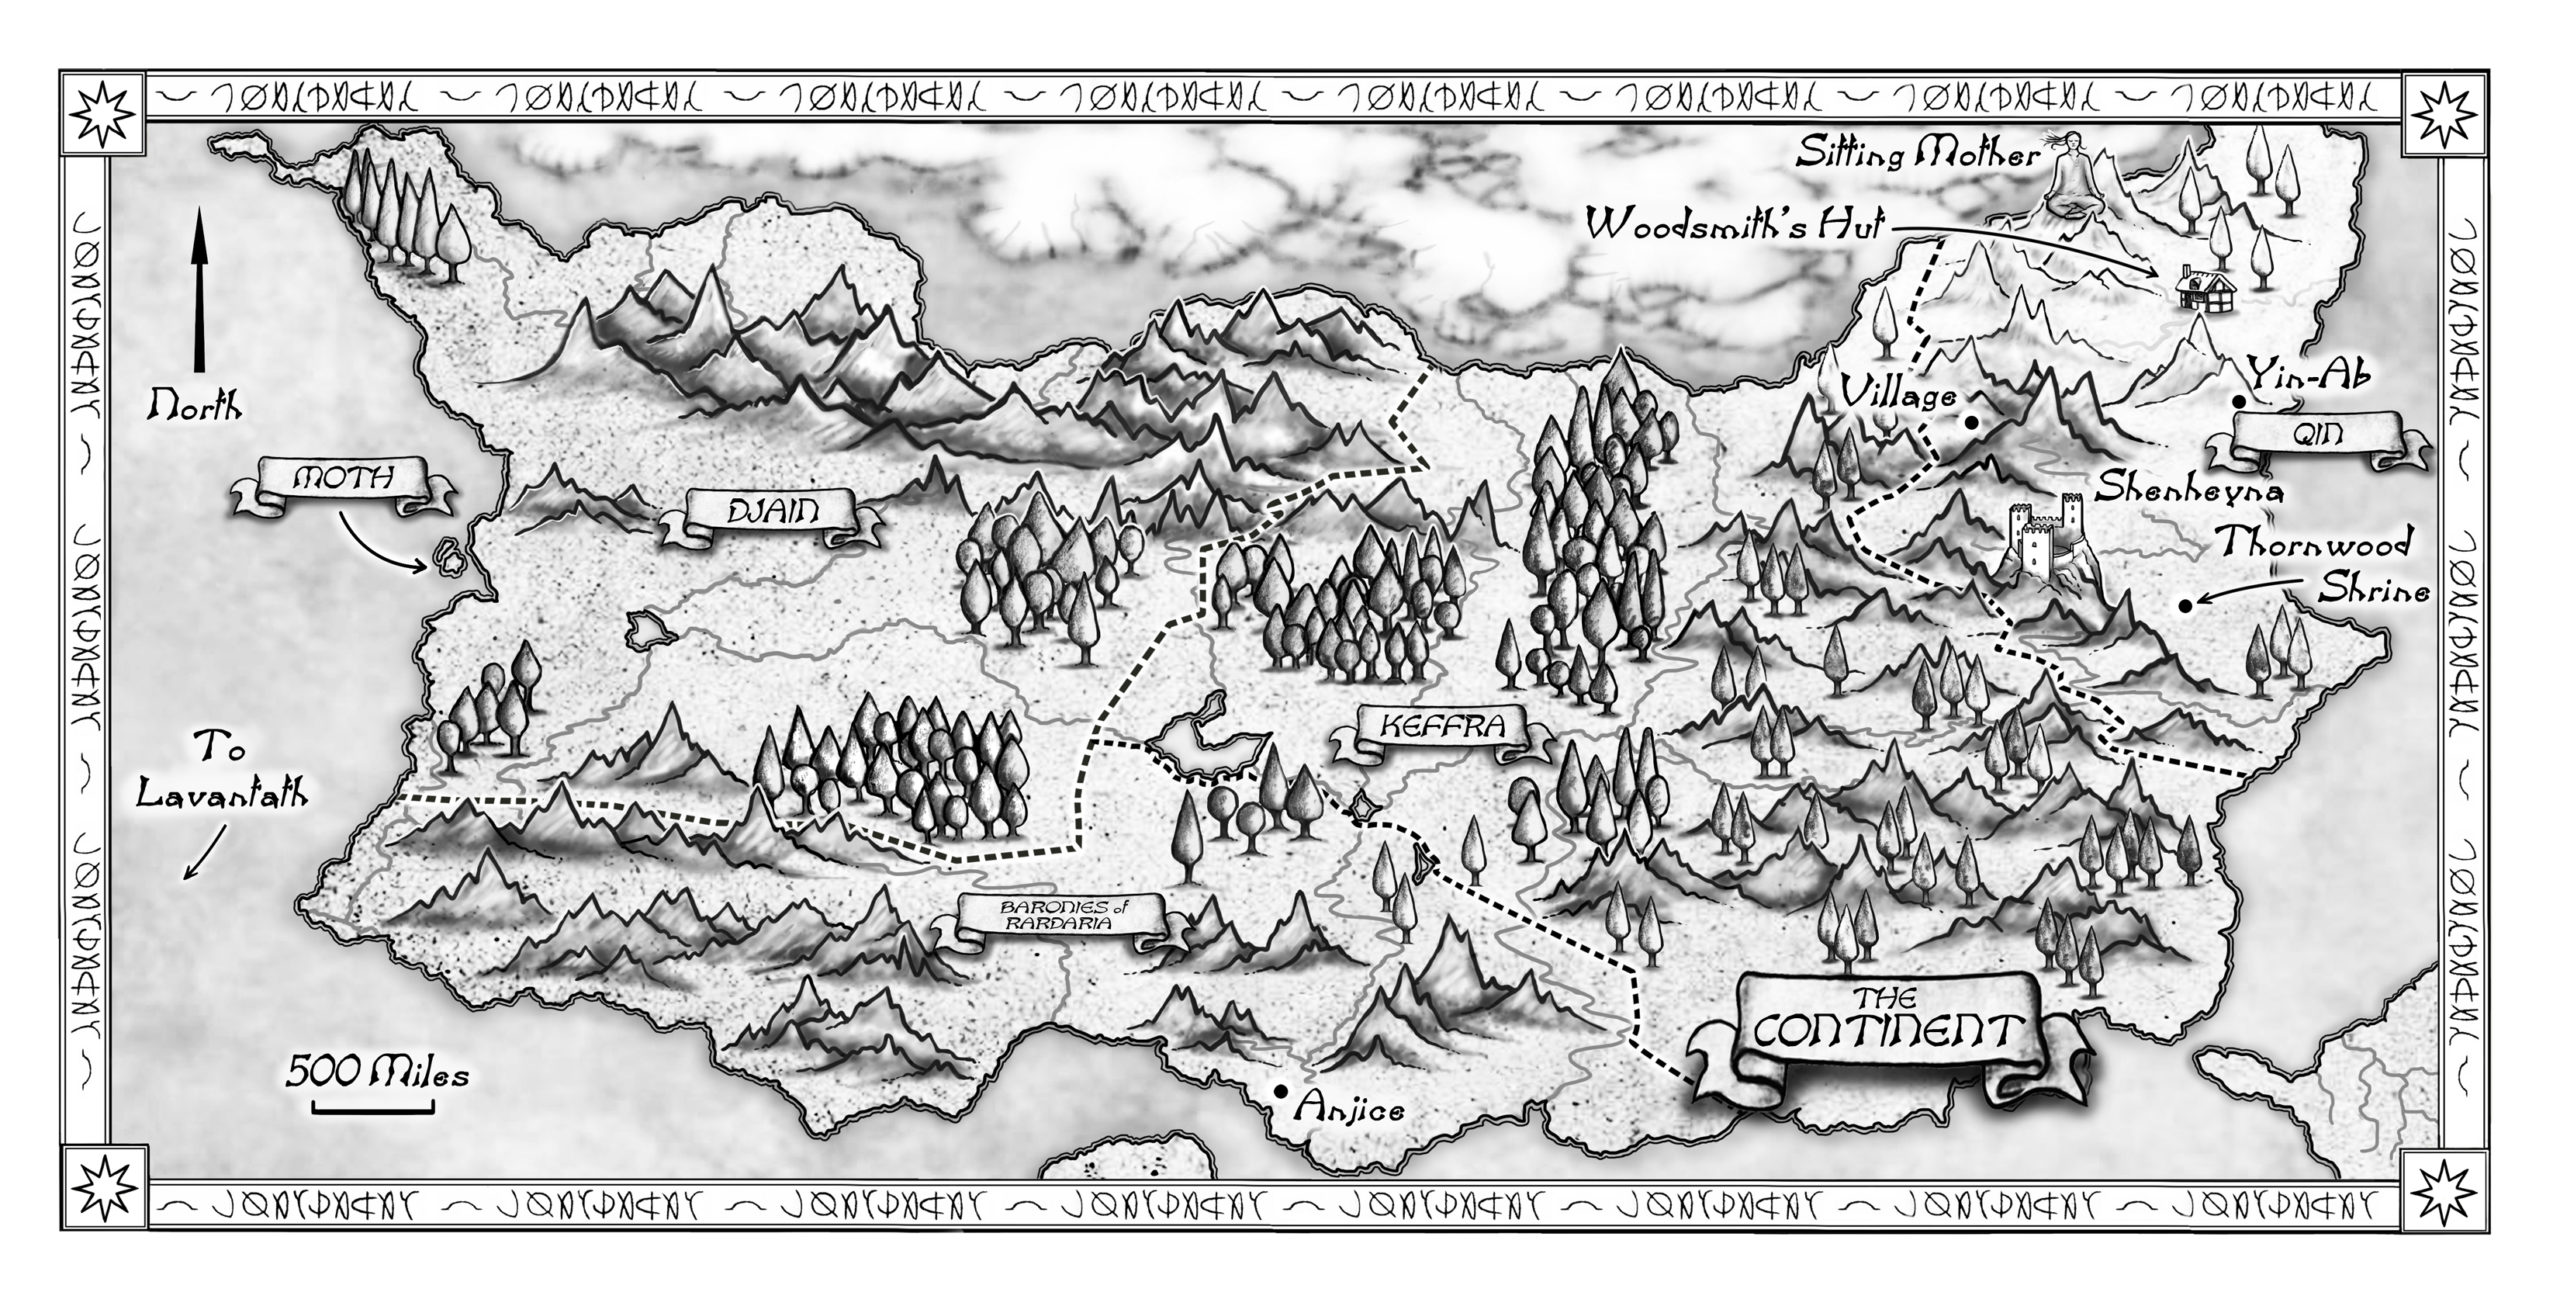 The Continent map